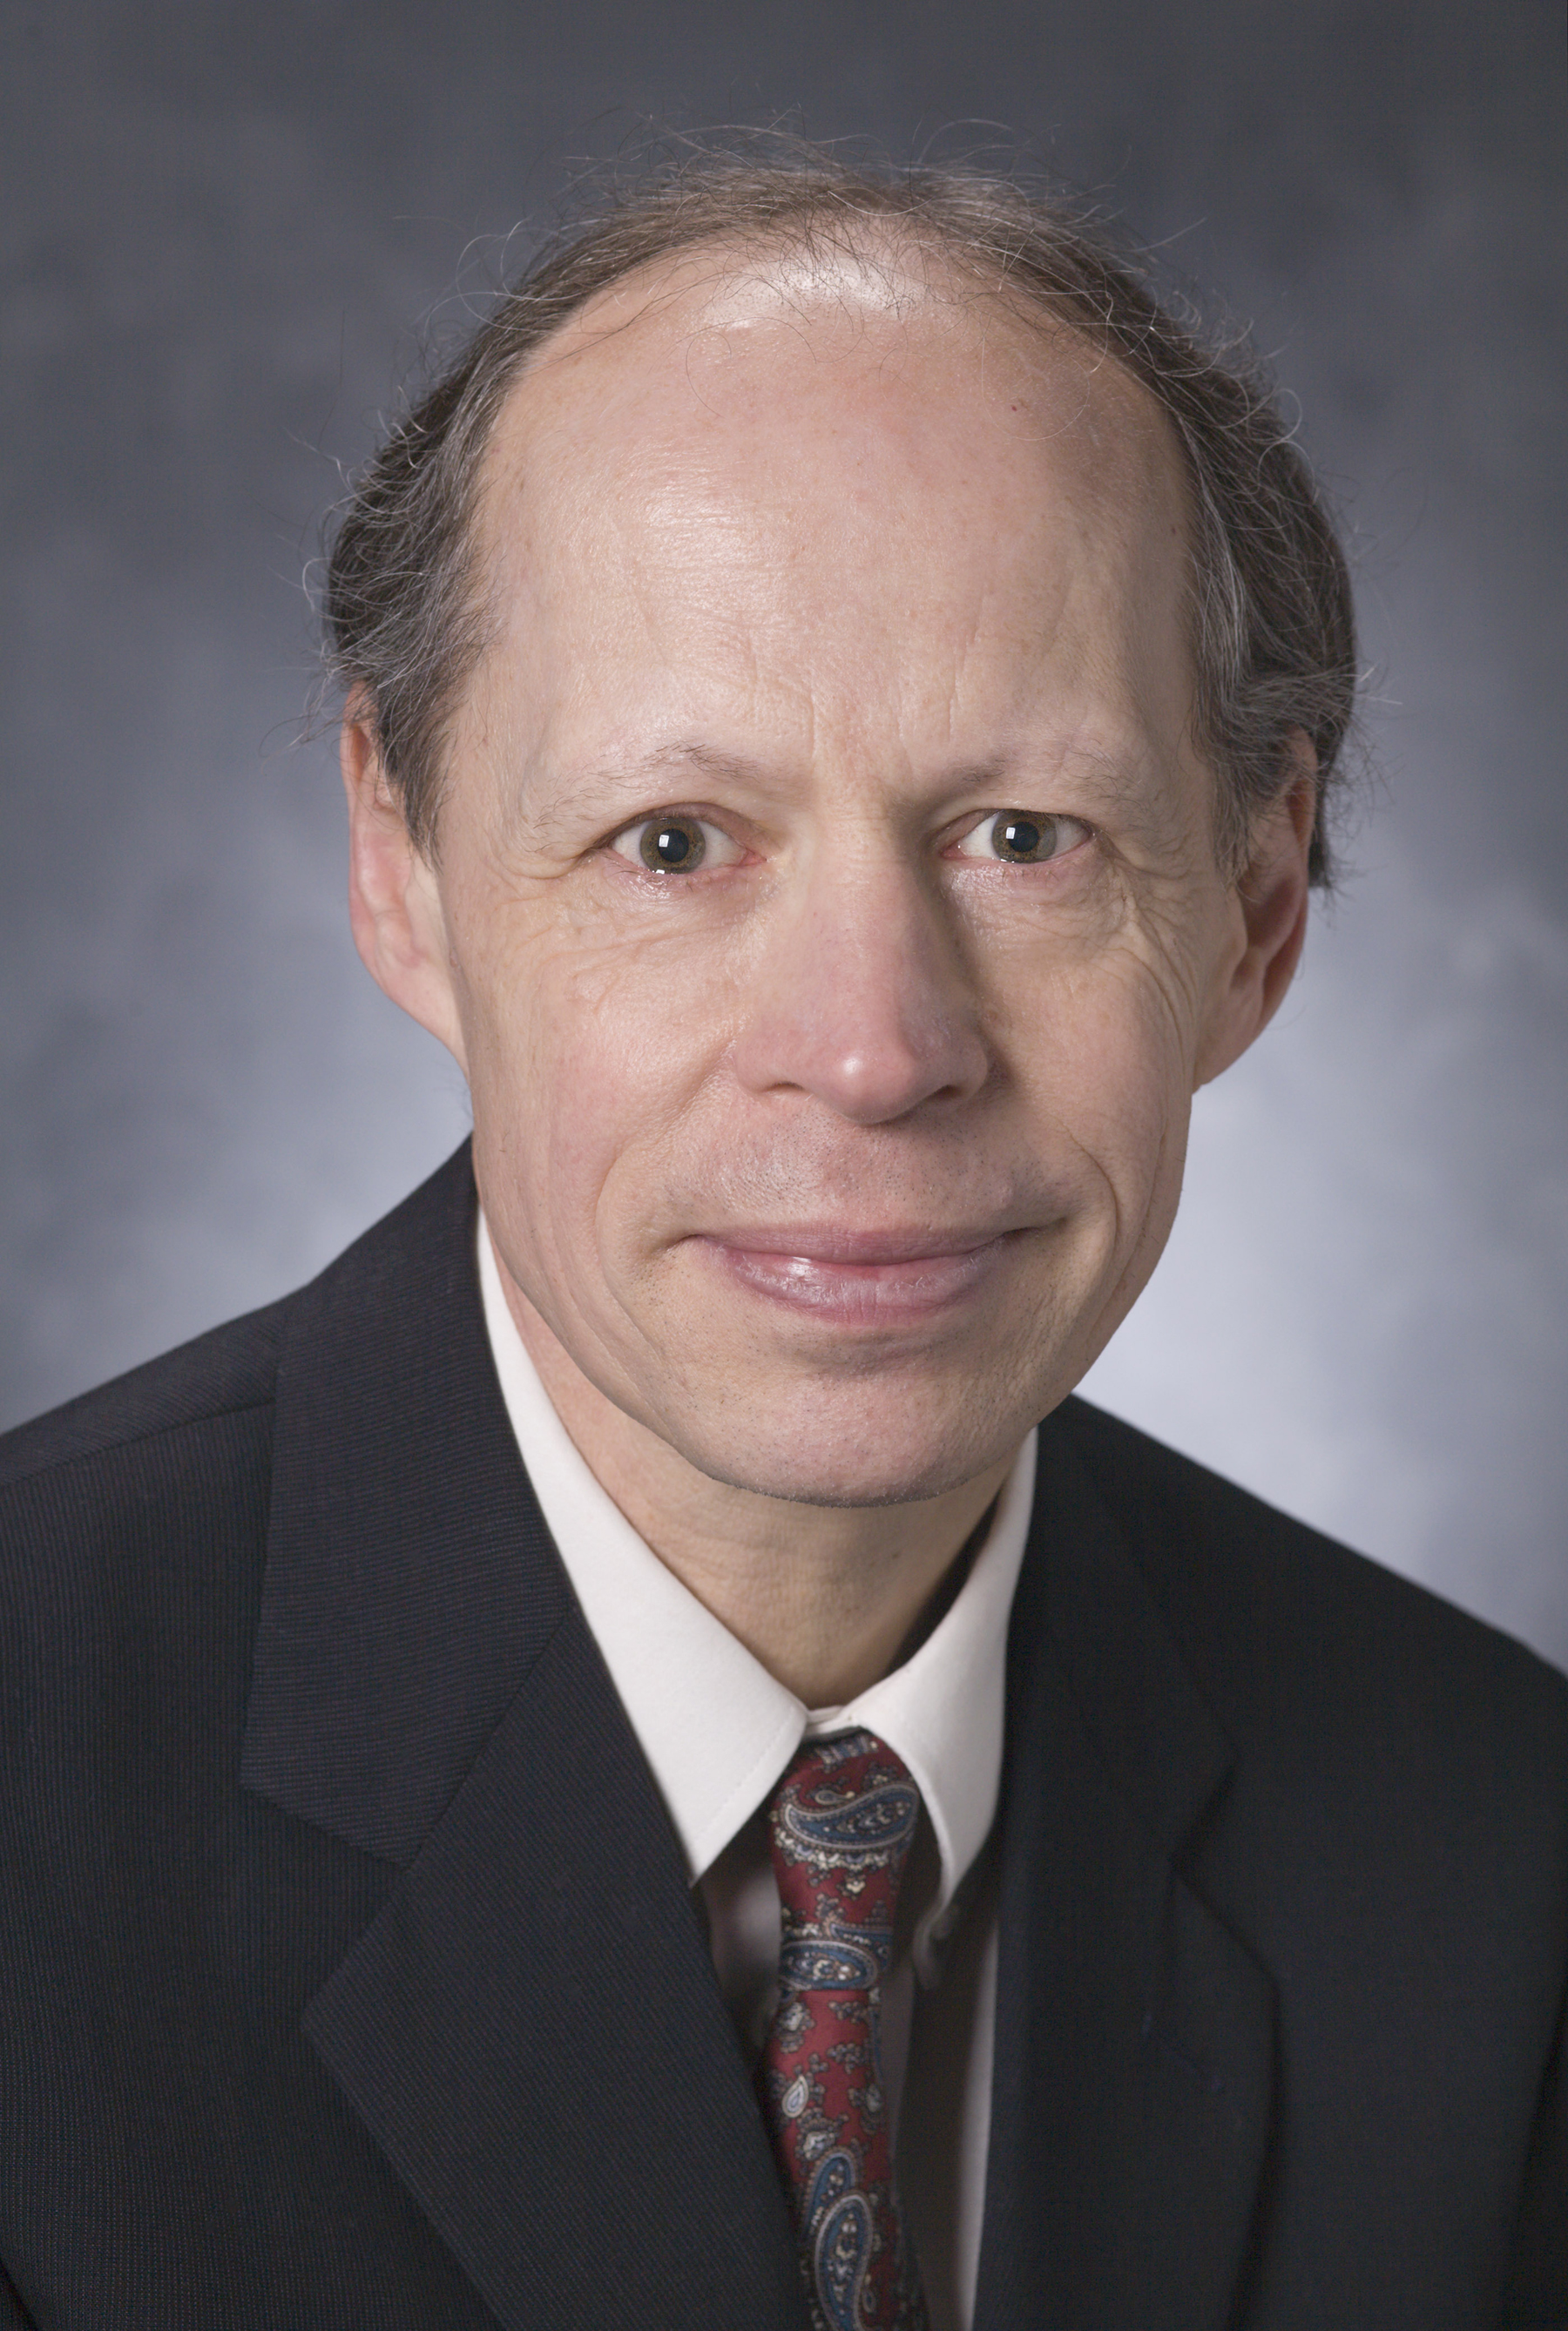 University of Georgia professor Michael Wetzstein has been awarded the National Teaching Award for Food and Agriculture Science by the Association of Public Land-grant Universities.